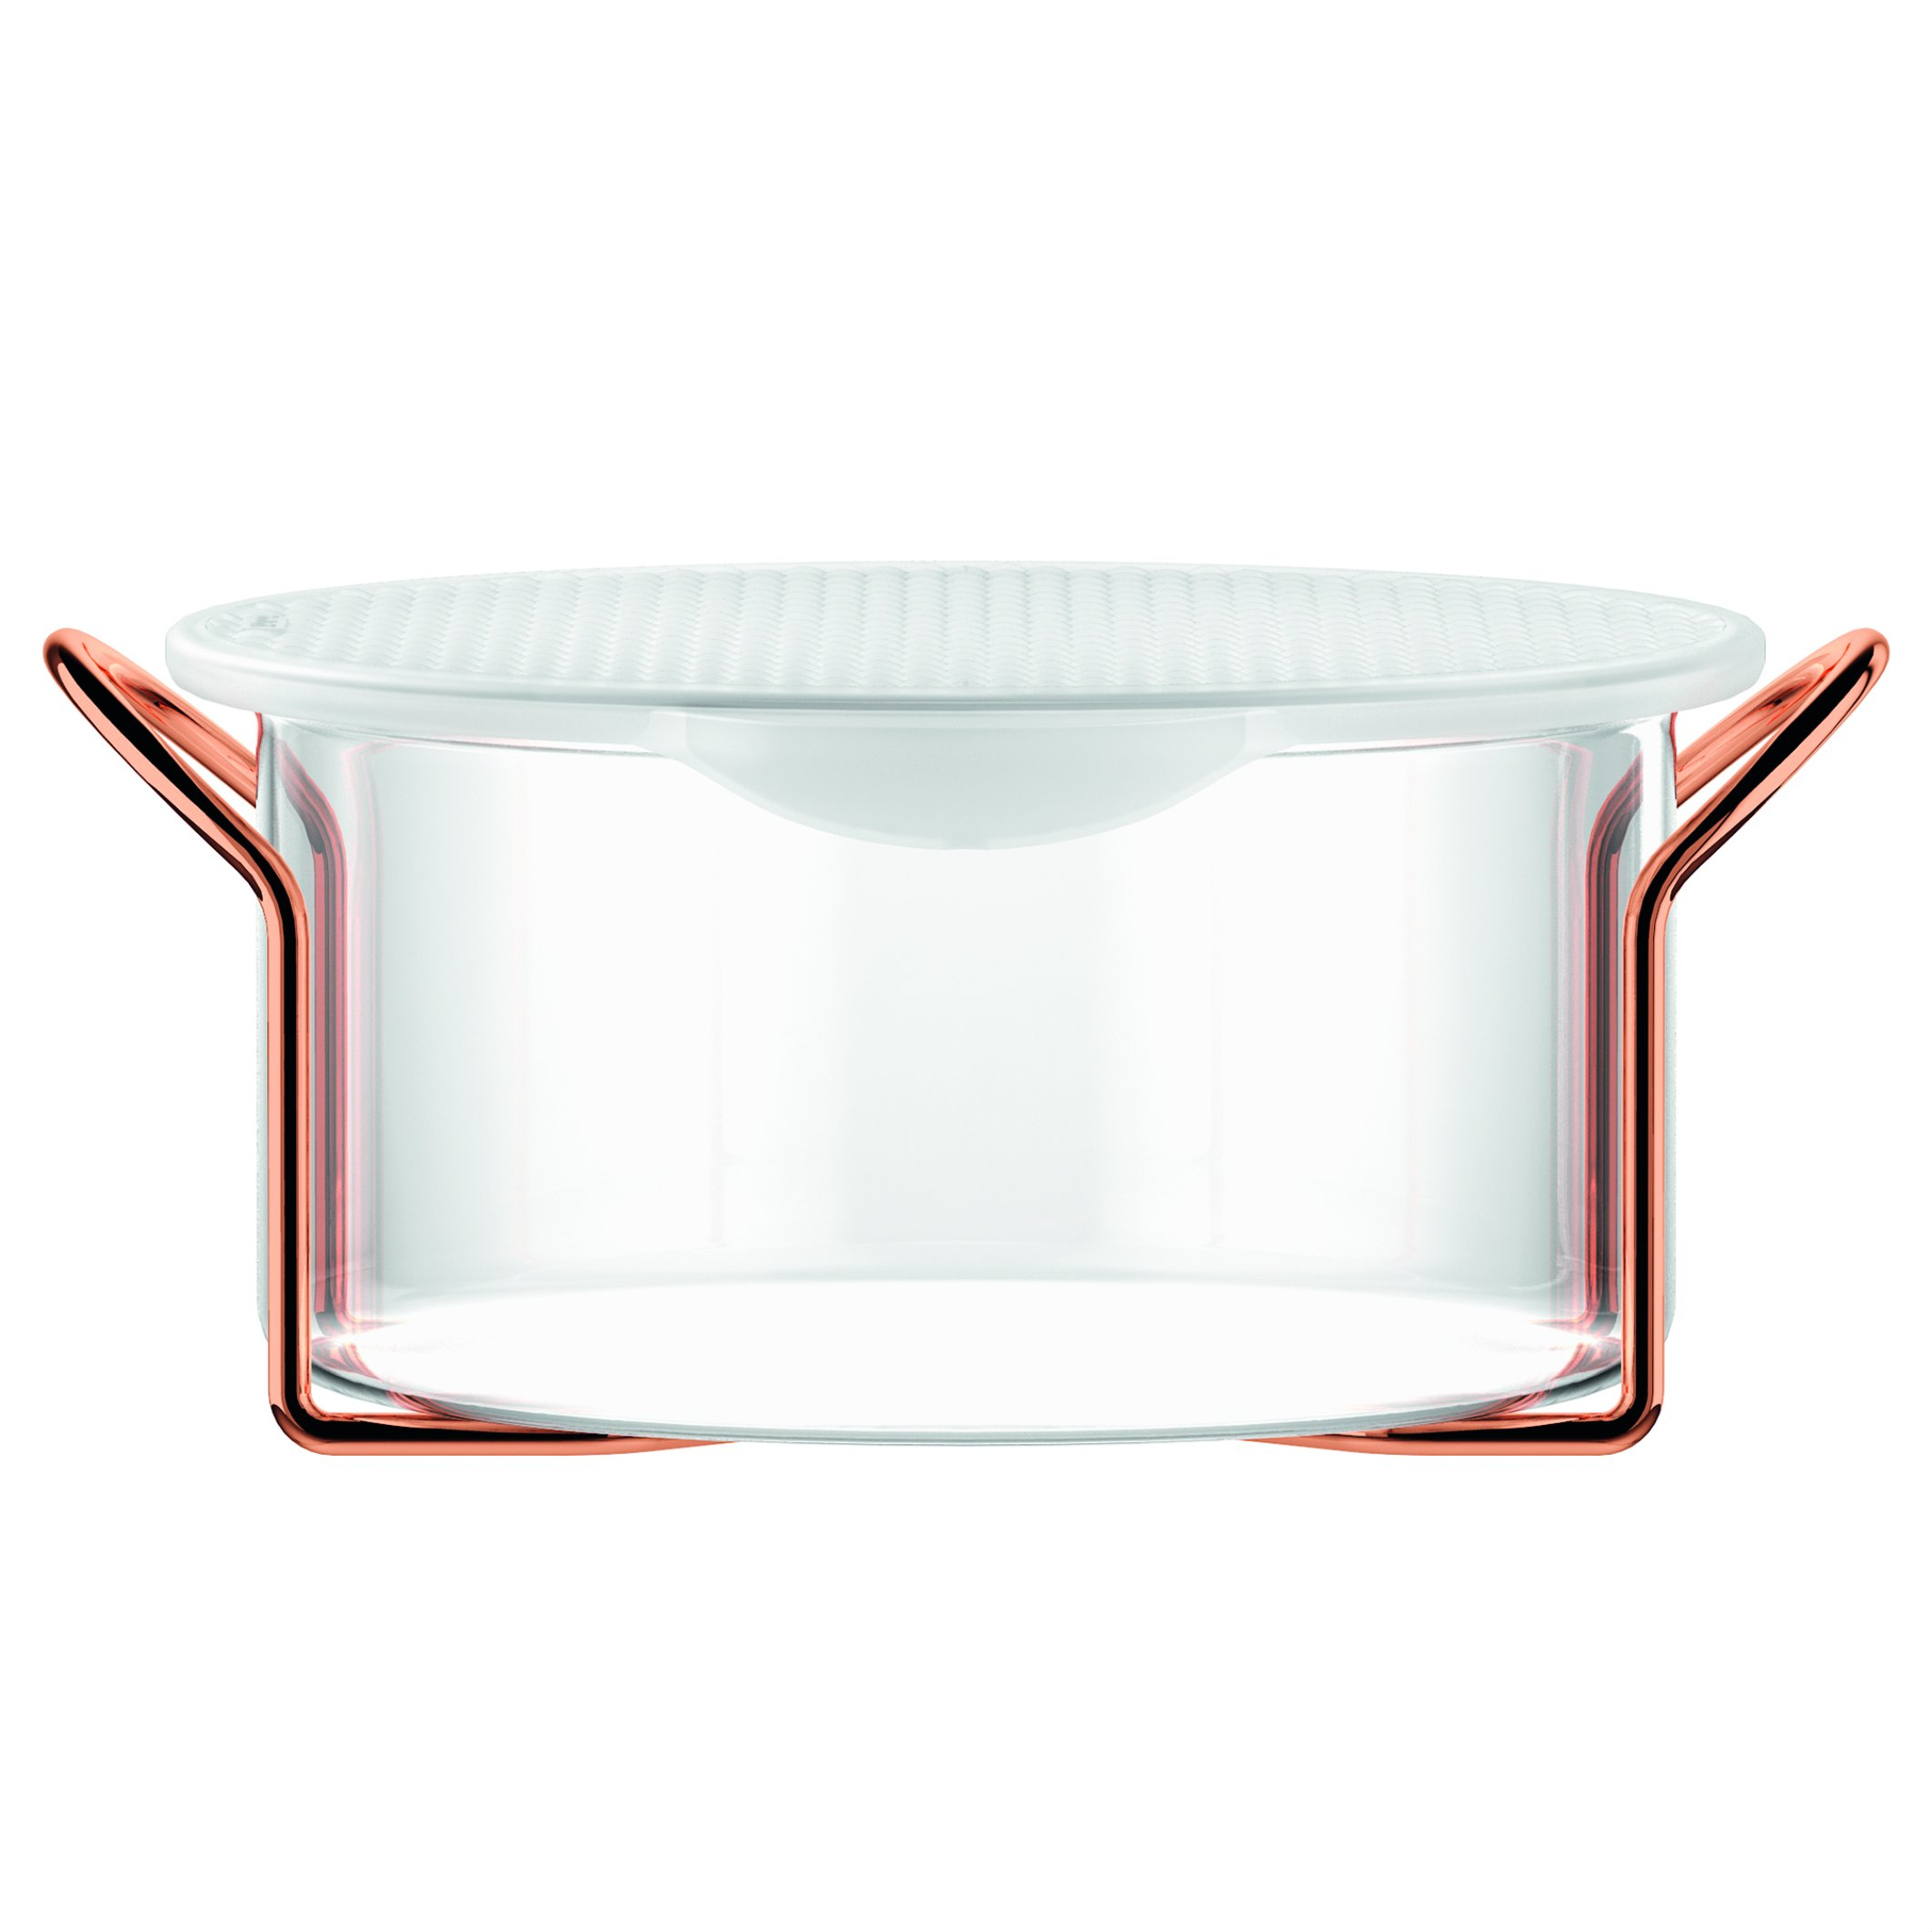 Bodum Hot Pot Bakeware Dish with Silicone Lid & Copper Stand, 2.0 L/68 oz/Large, Copper by Bodum (Image #1)